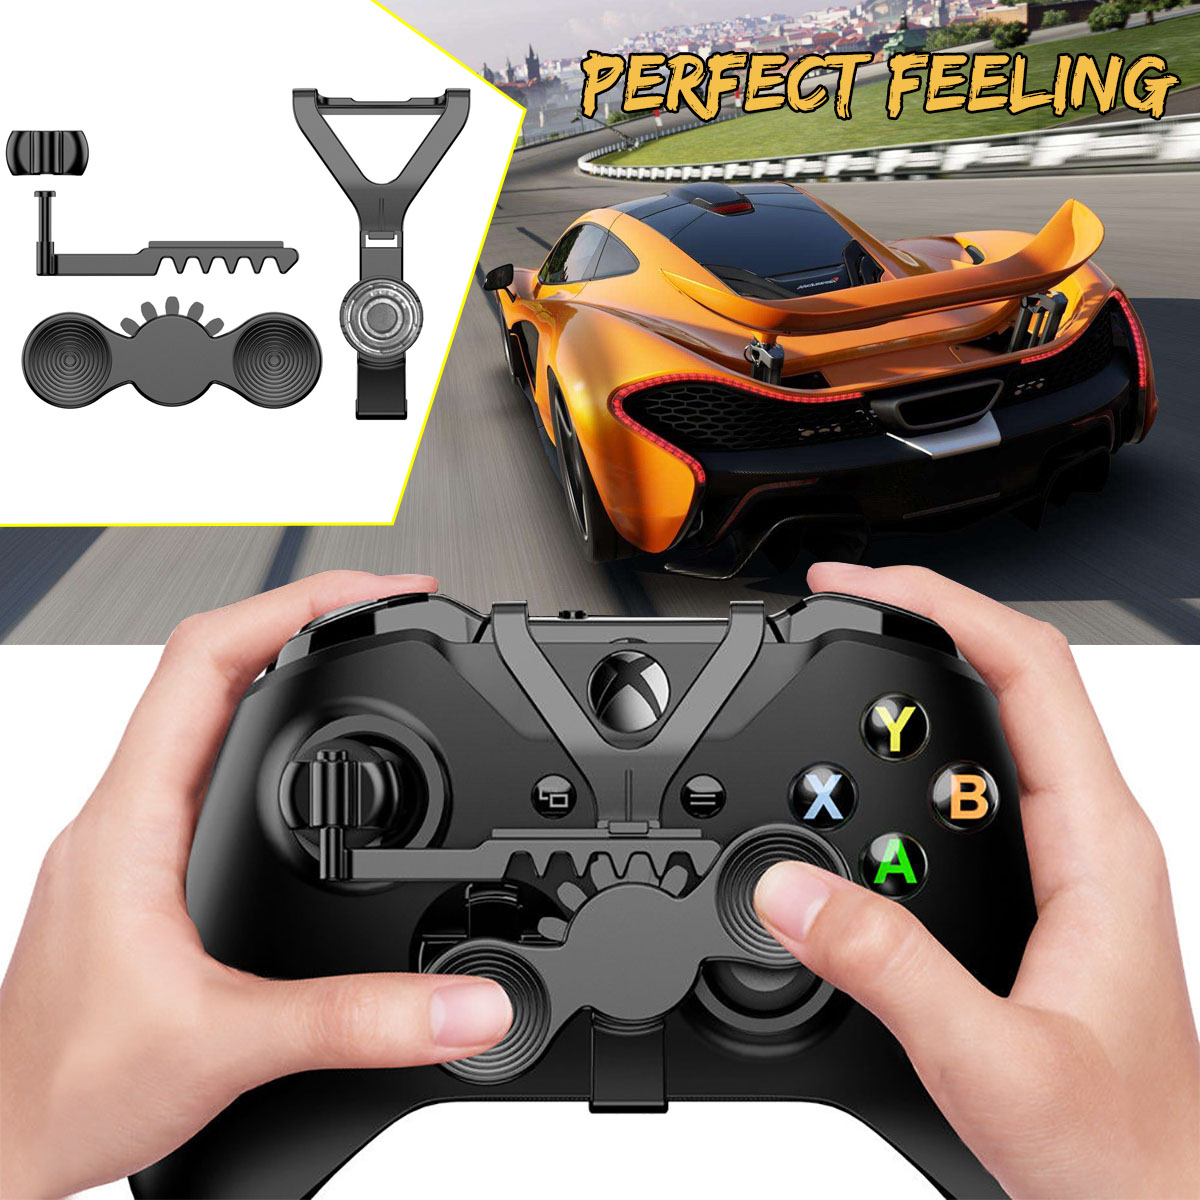 Racing Replacement Mini Steering Wheel Controller Add-on for Racing Games for Xbox One S for XBox One X Controller Games image